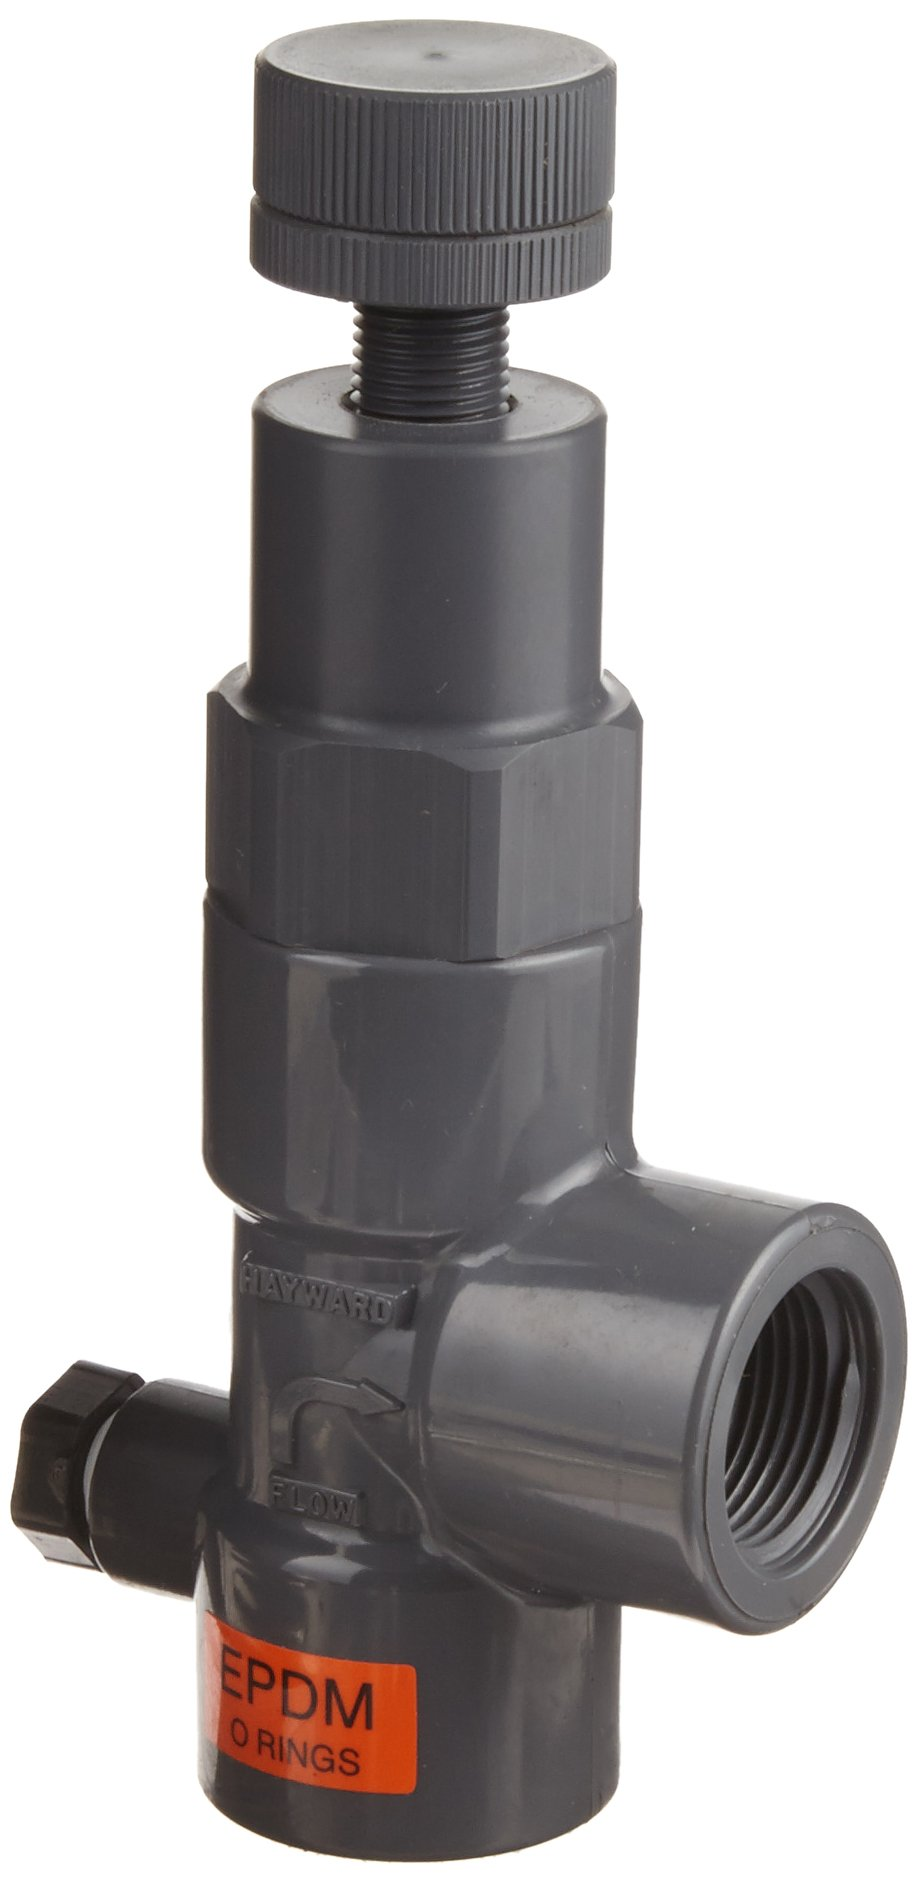 Hayward RV1075TE Series RV Pressure Relief Valve, PVC with EPDM Seals, Threaded End, 3/4'' Size